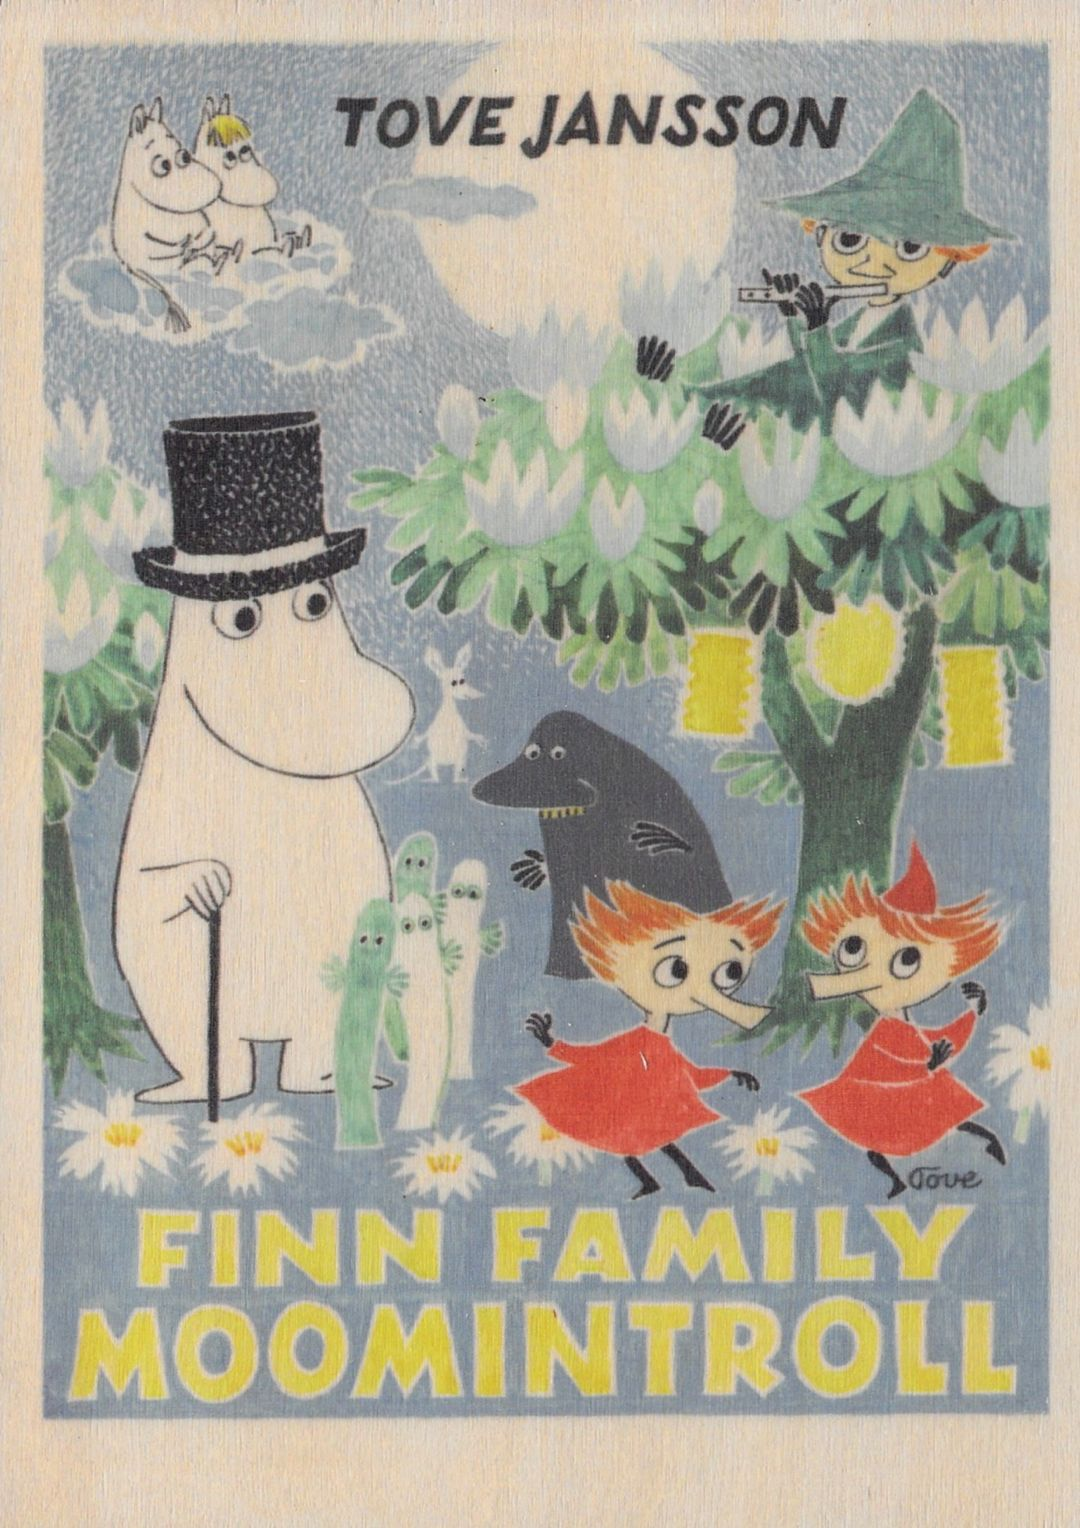 Come to Finland wooden artwork 15 x 21 cm Finn Family MU-A5-6